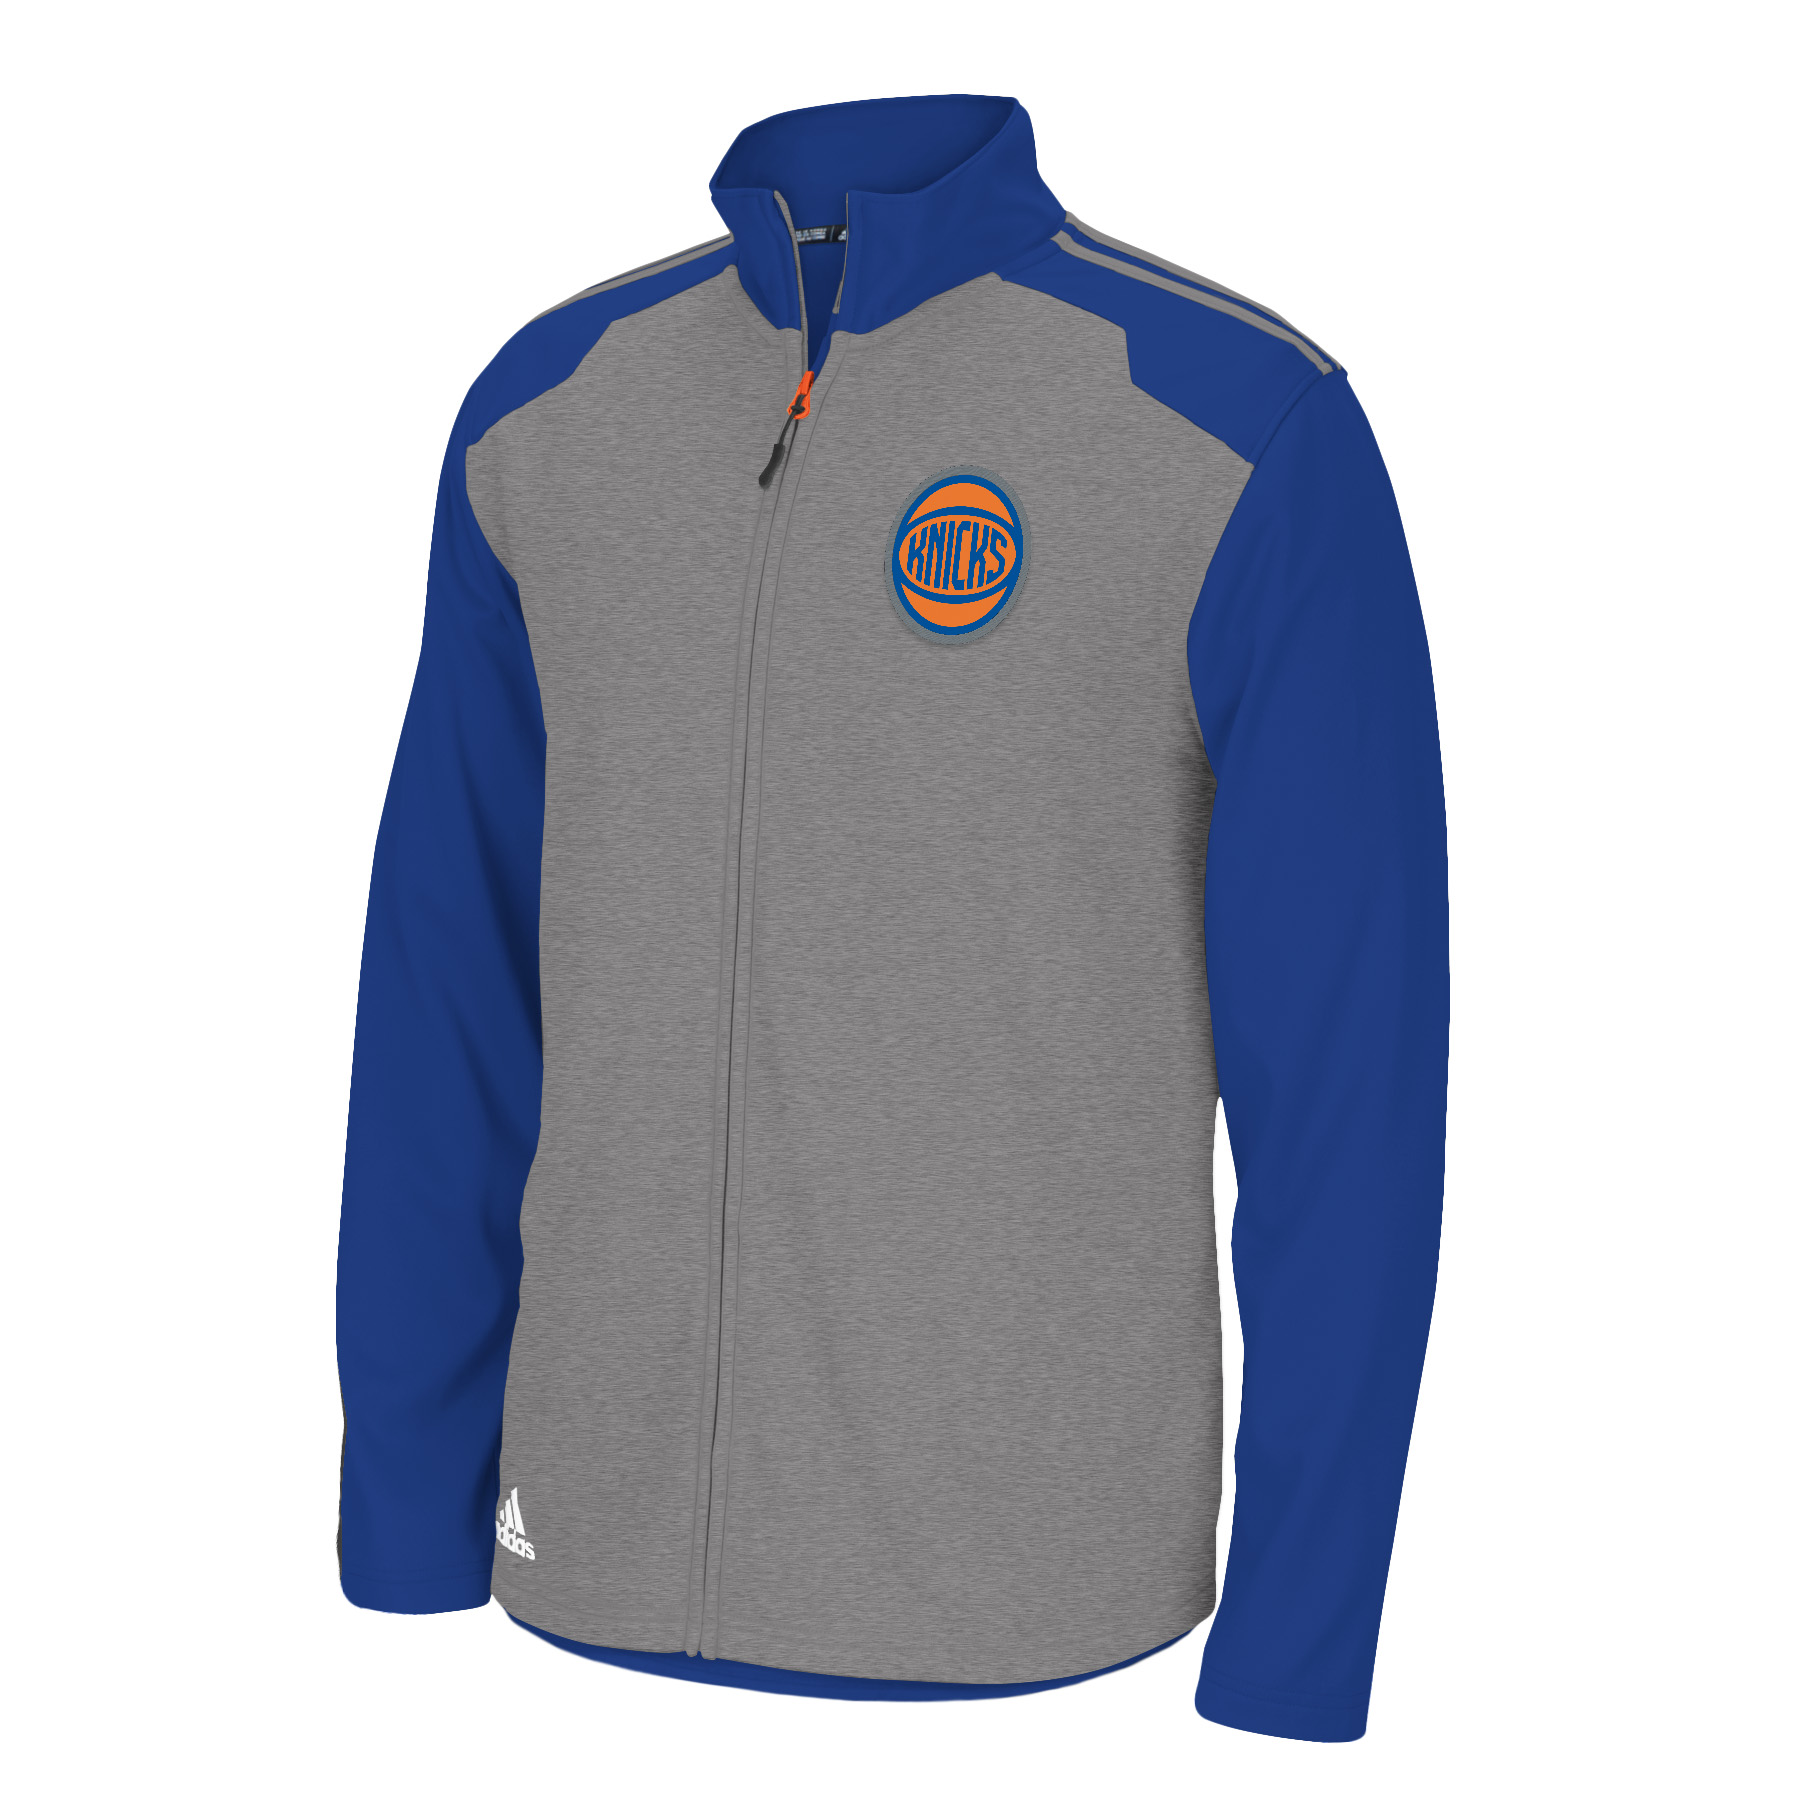 New York Knicks Adidas 2014 NBA Climawarm Full Zip Men's Fleece Jacket